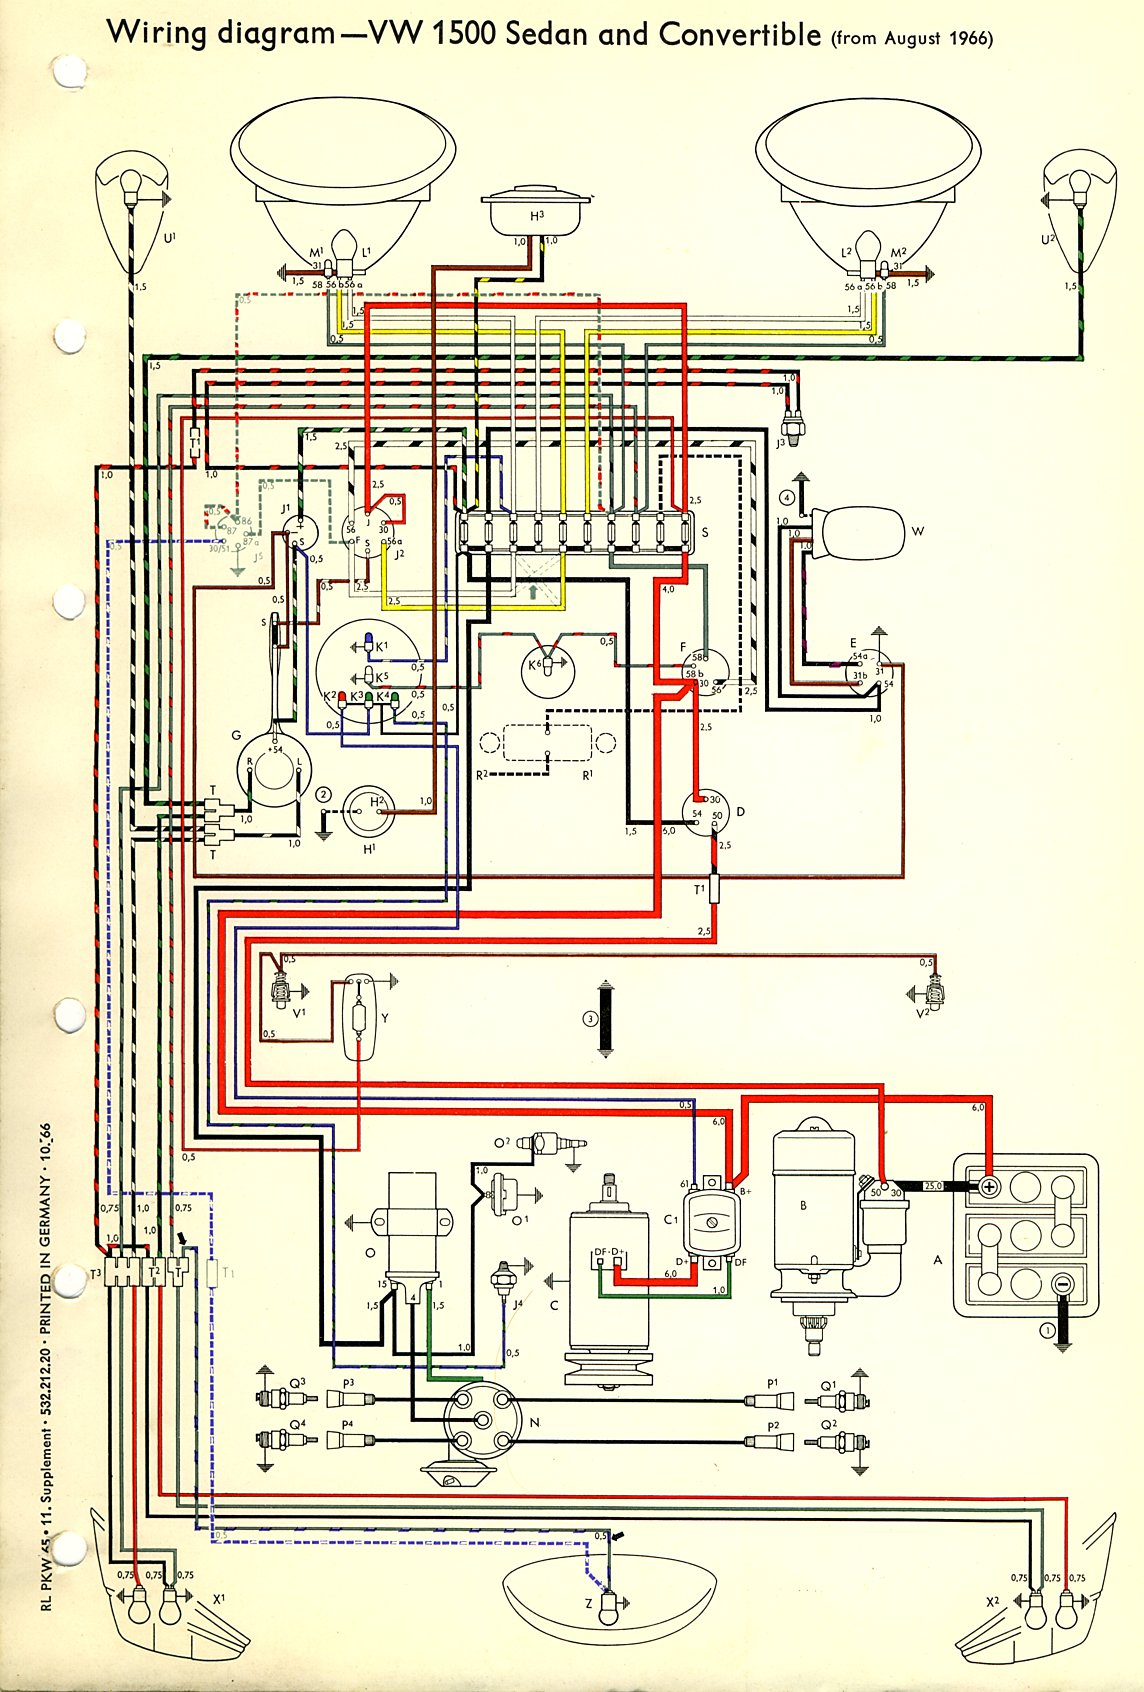 Vw bug wiring diagram vw bug wiring diagram wiring diagrams thesamba com type 1 wiring diagrams vw beetle wiring diagram 1974 vw bug wiring diagram publicscrutiny